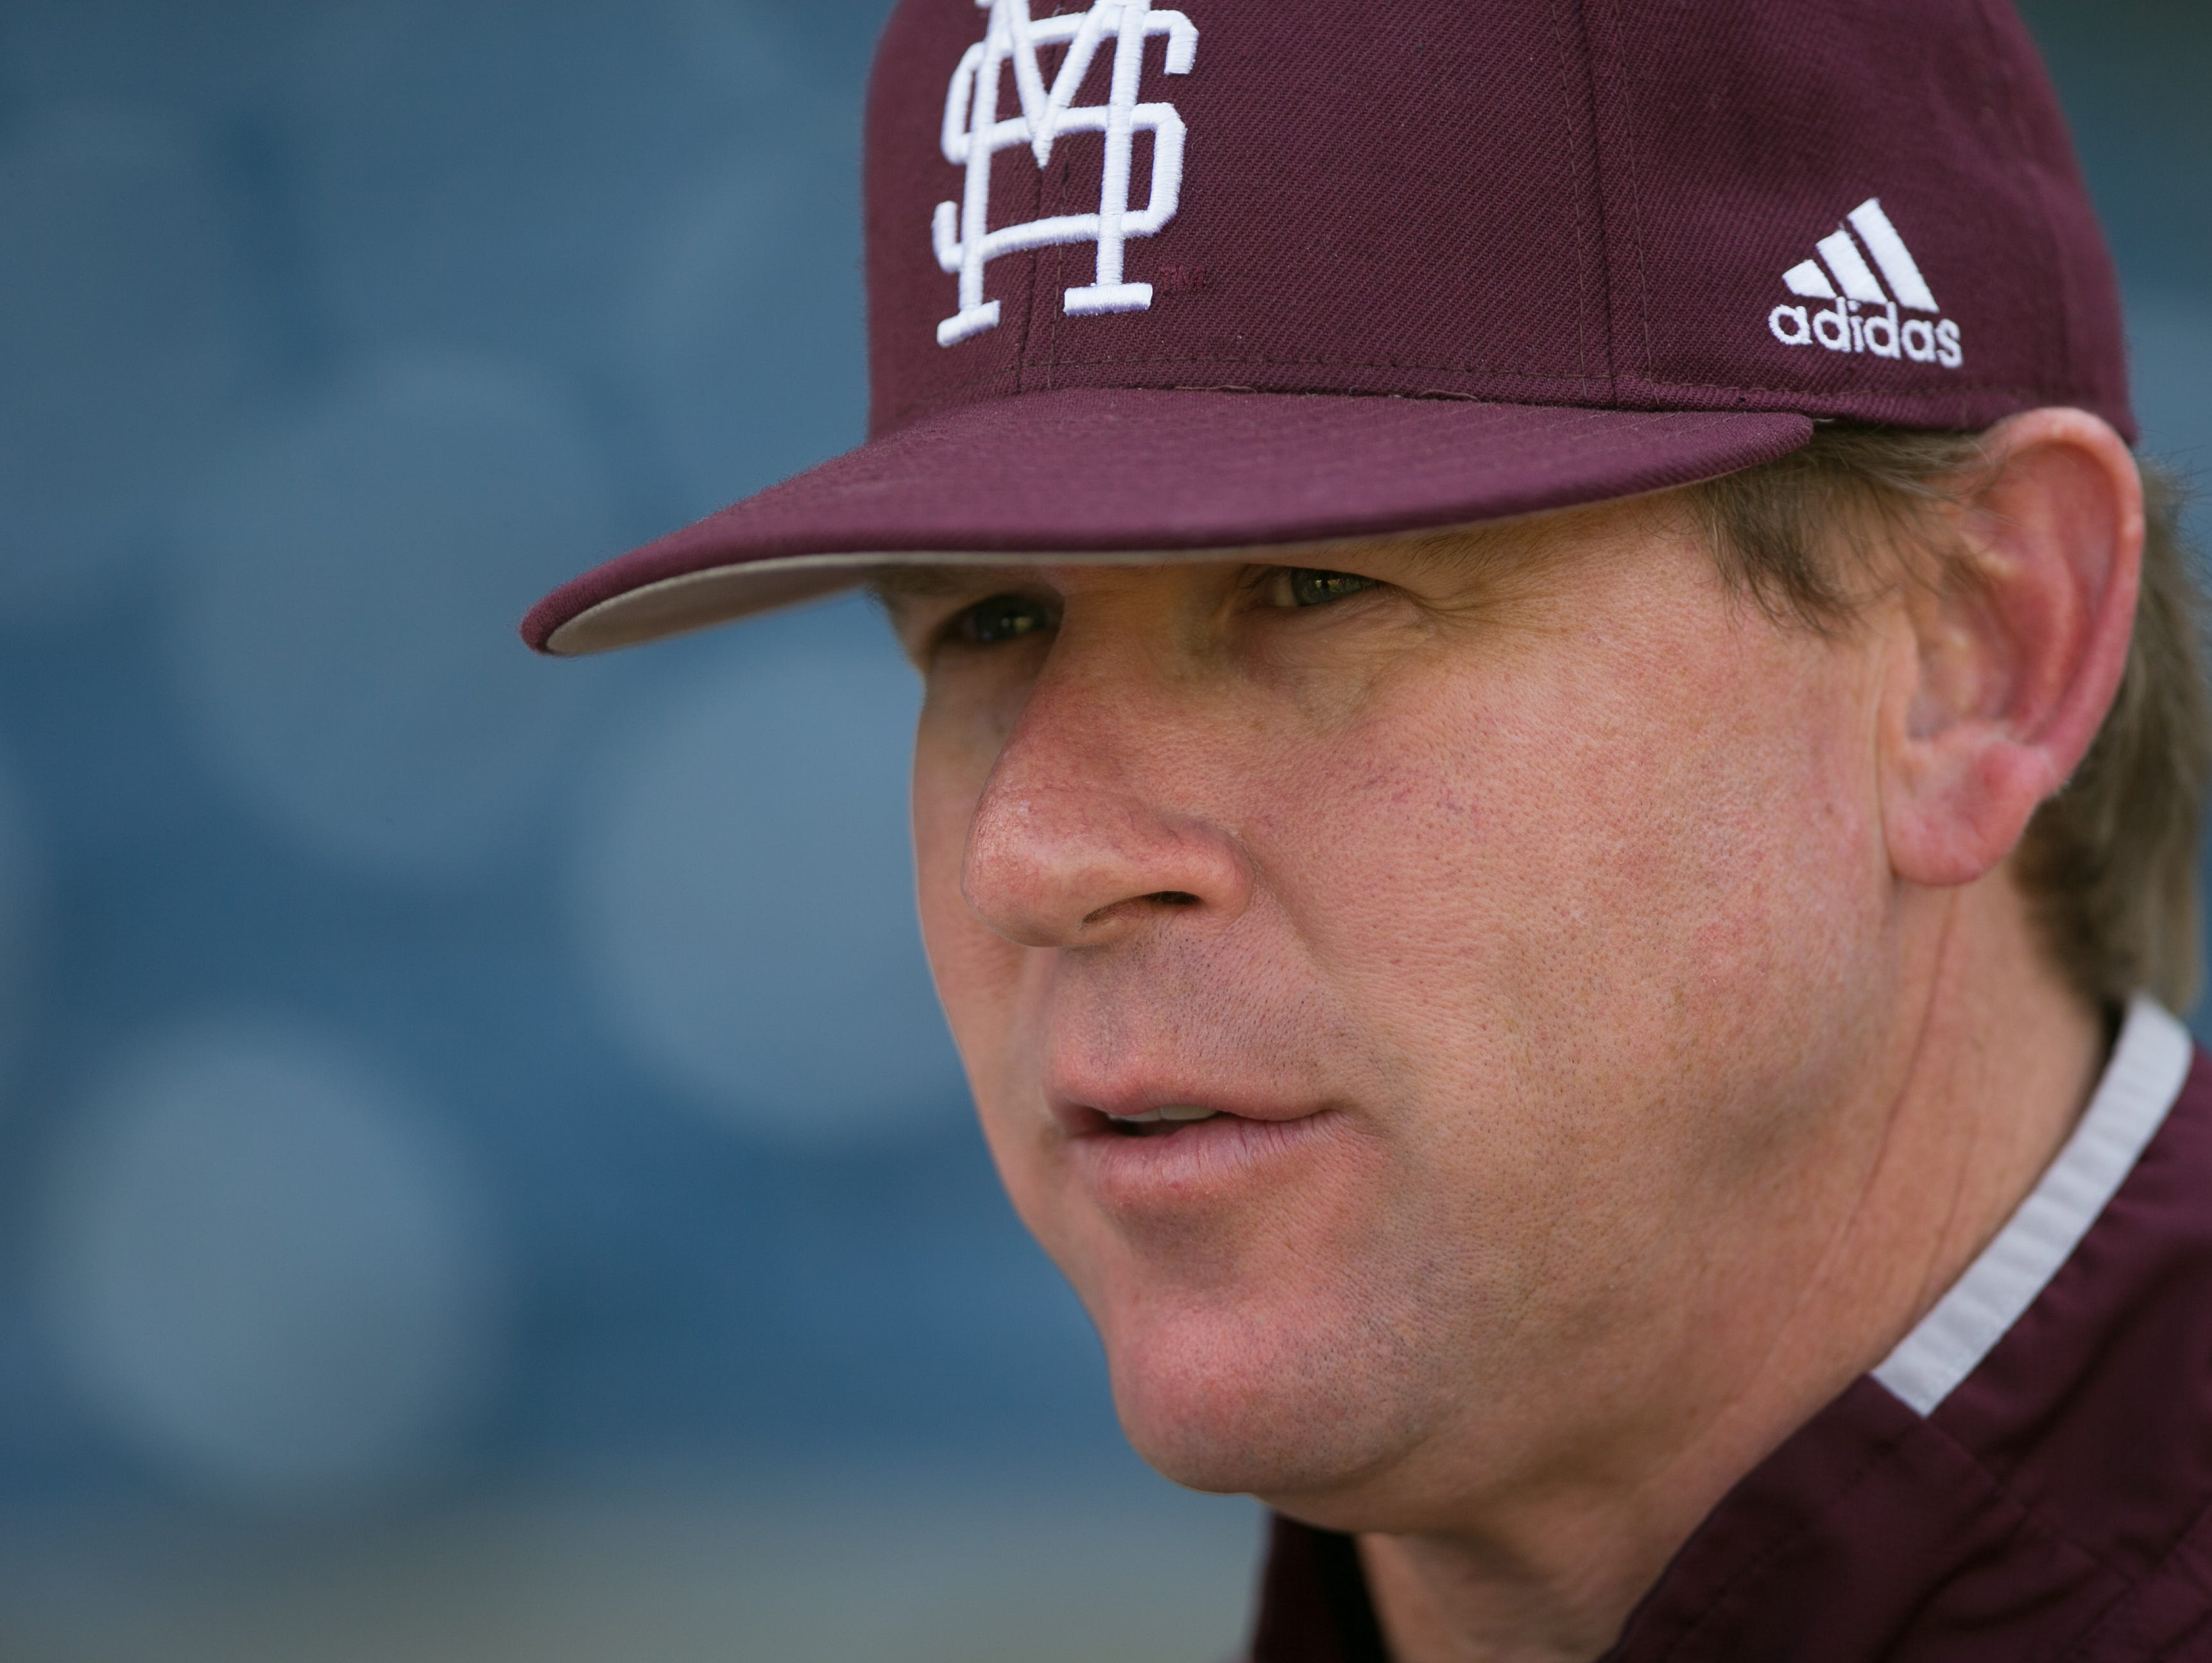 Mississippi State University head baseball coach John Cohen talks to the media prior to the Bulldogs' game against USM at Trustmark Park in Pearl on March 24, 2015. Photo by Keith Warren